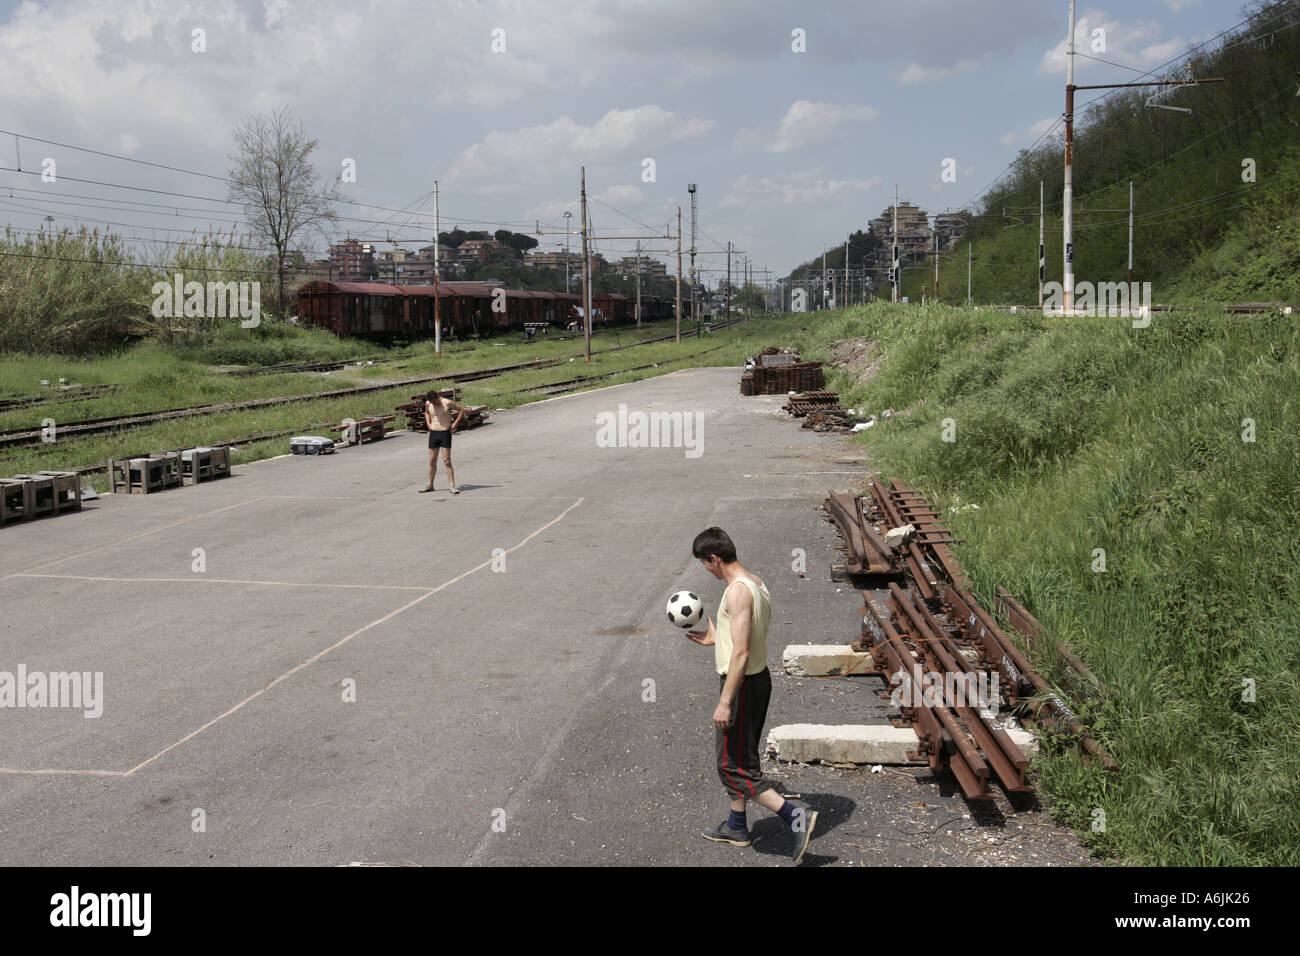 Two men playing football in a disused train station Rome italy - Stock Image